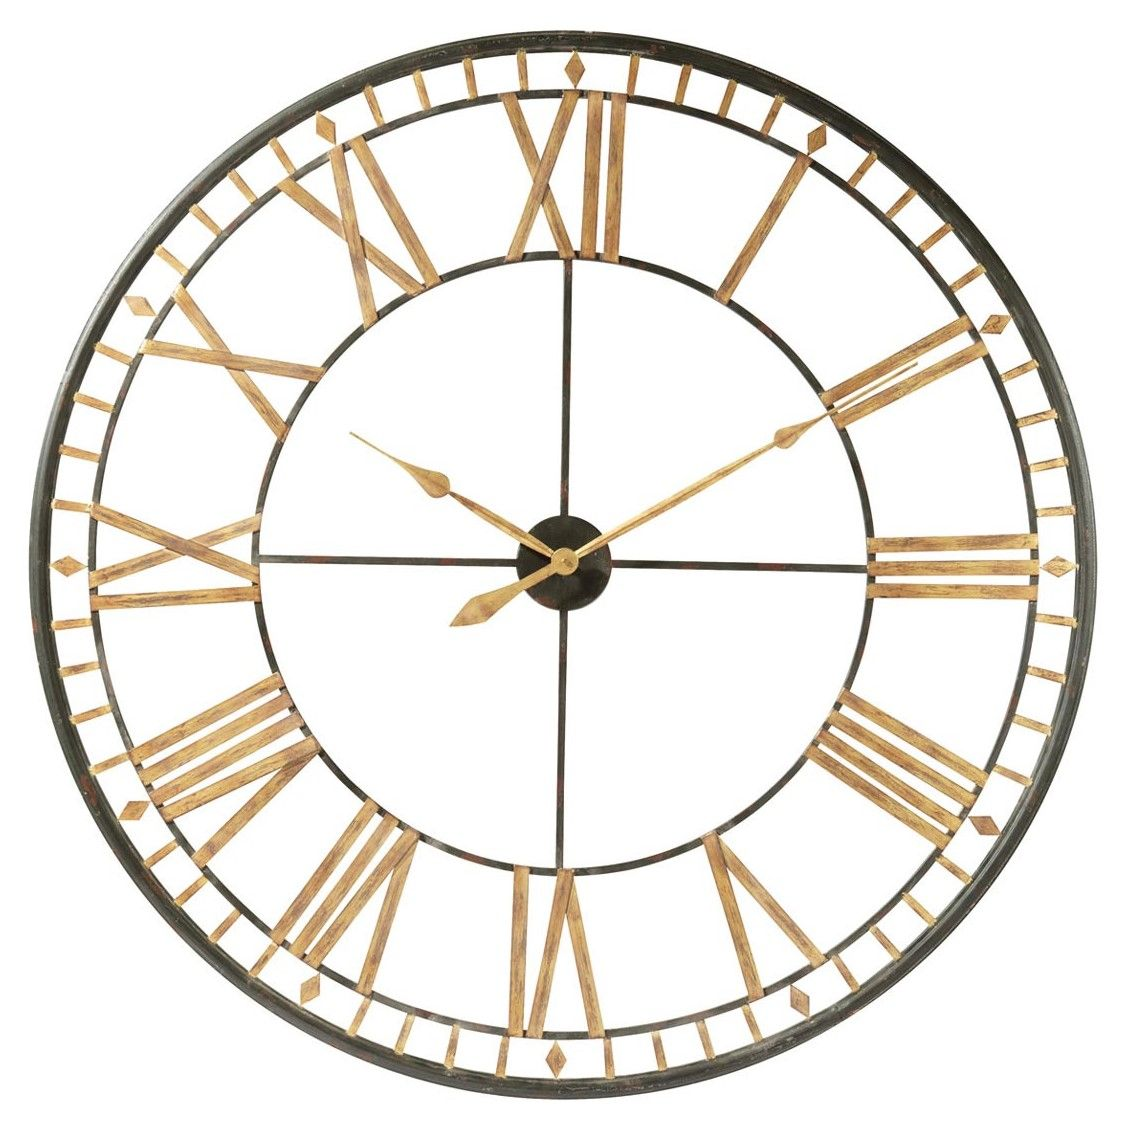 La Valliere Black Metal Clock Diameter 120cm In 2020 Metal Clock Metal Wall Clock Oversized Wall Clock